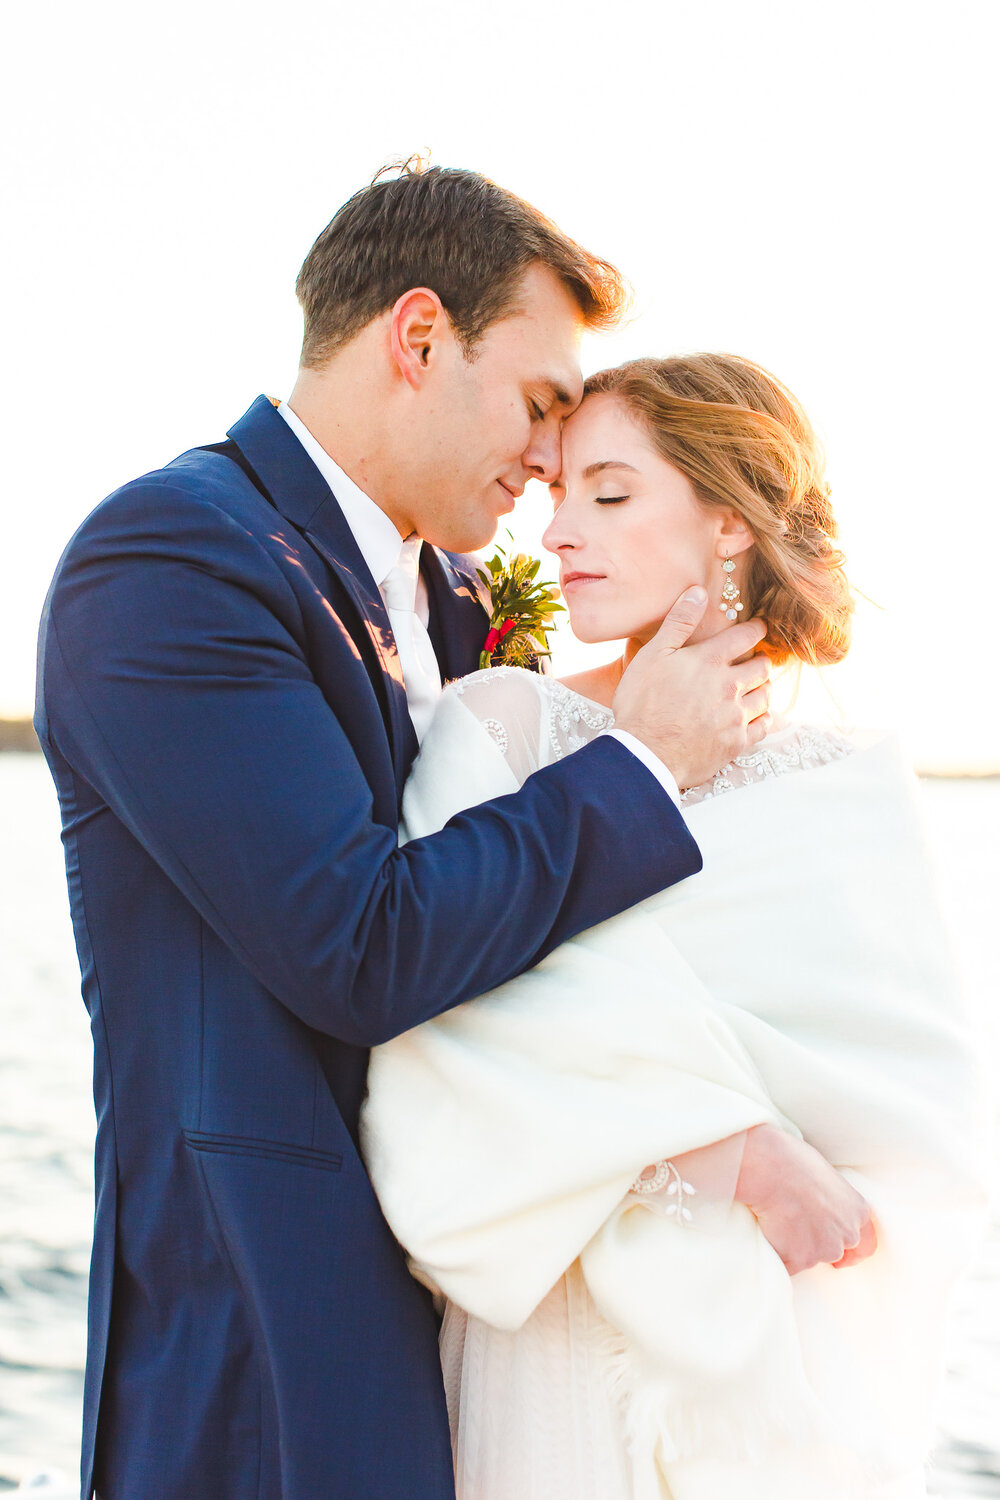 The Photos